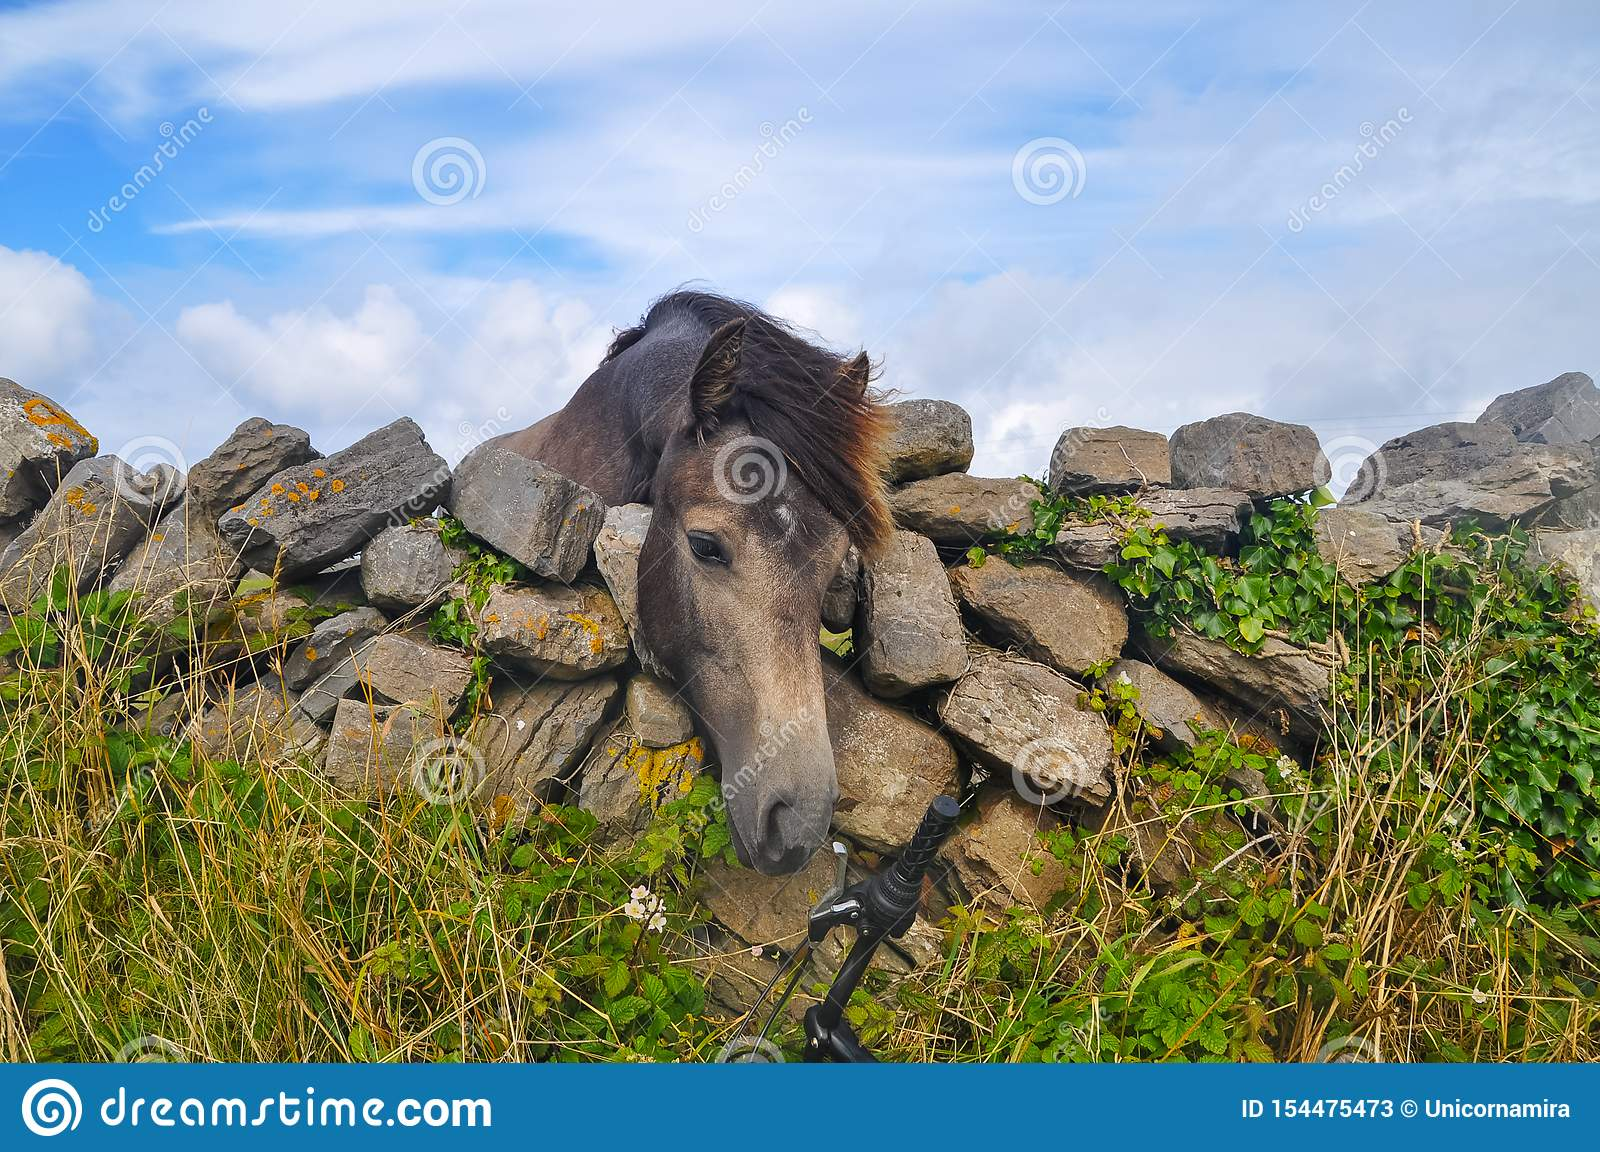 Young Horse`s head close up, curious animal drawing it`s nose to bicycle over stone fence